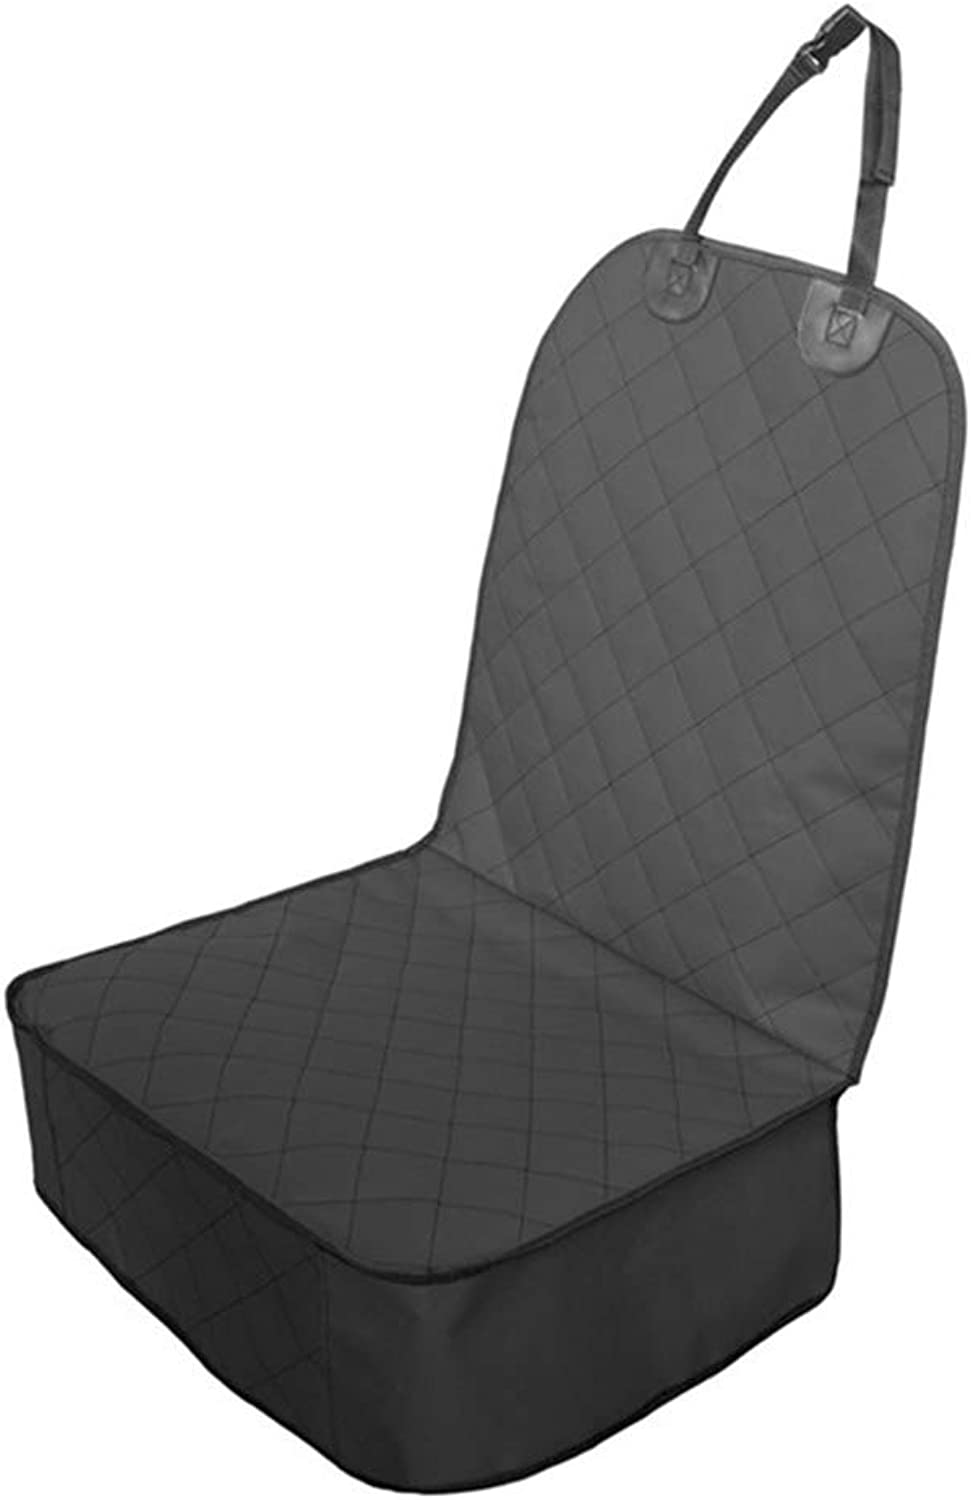 Dog's Front seat Cover, pet car seat Cover for Cars, Trucks and SUVs, Waterproof and AntiSkid Support Routine,Black